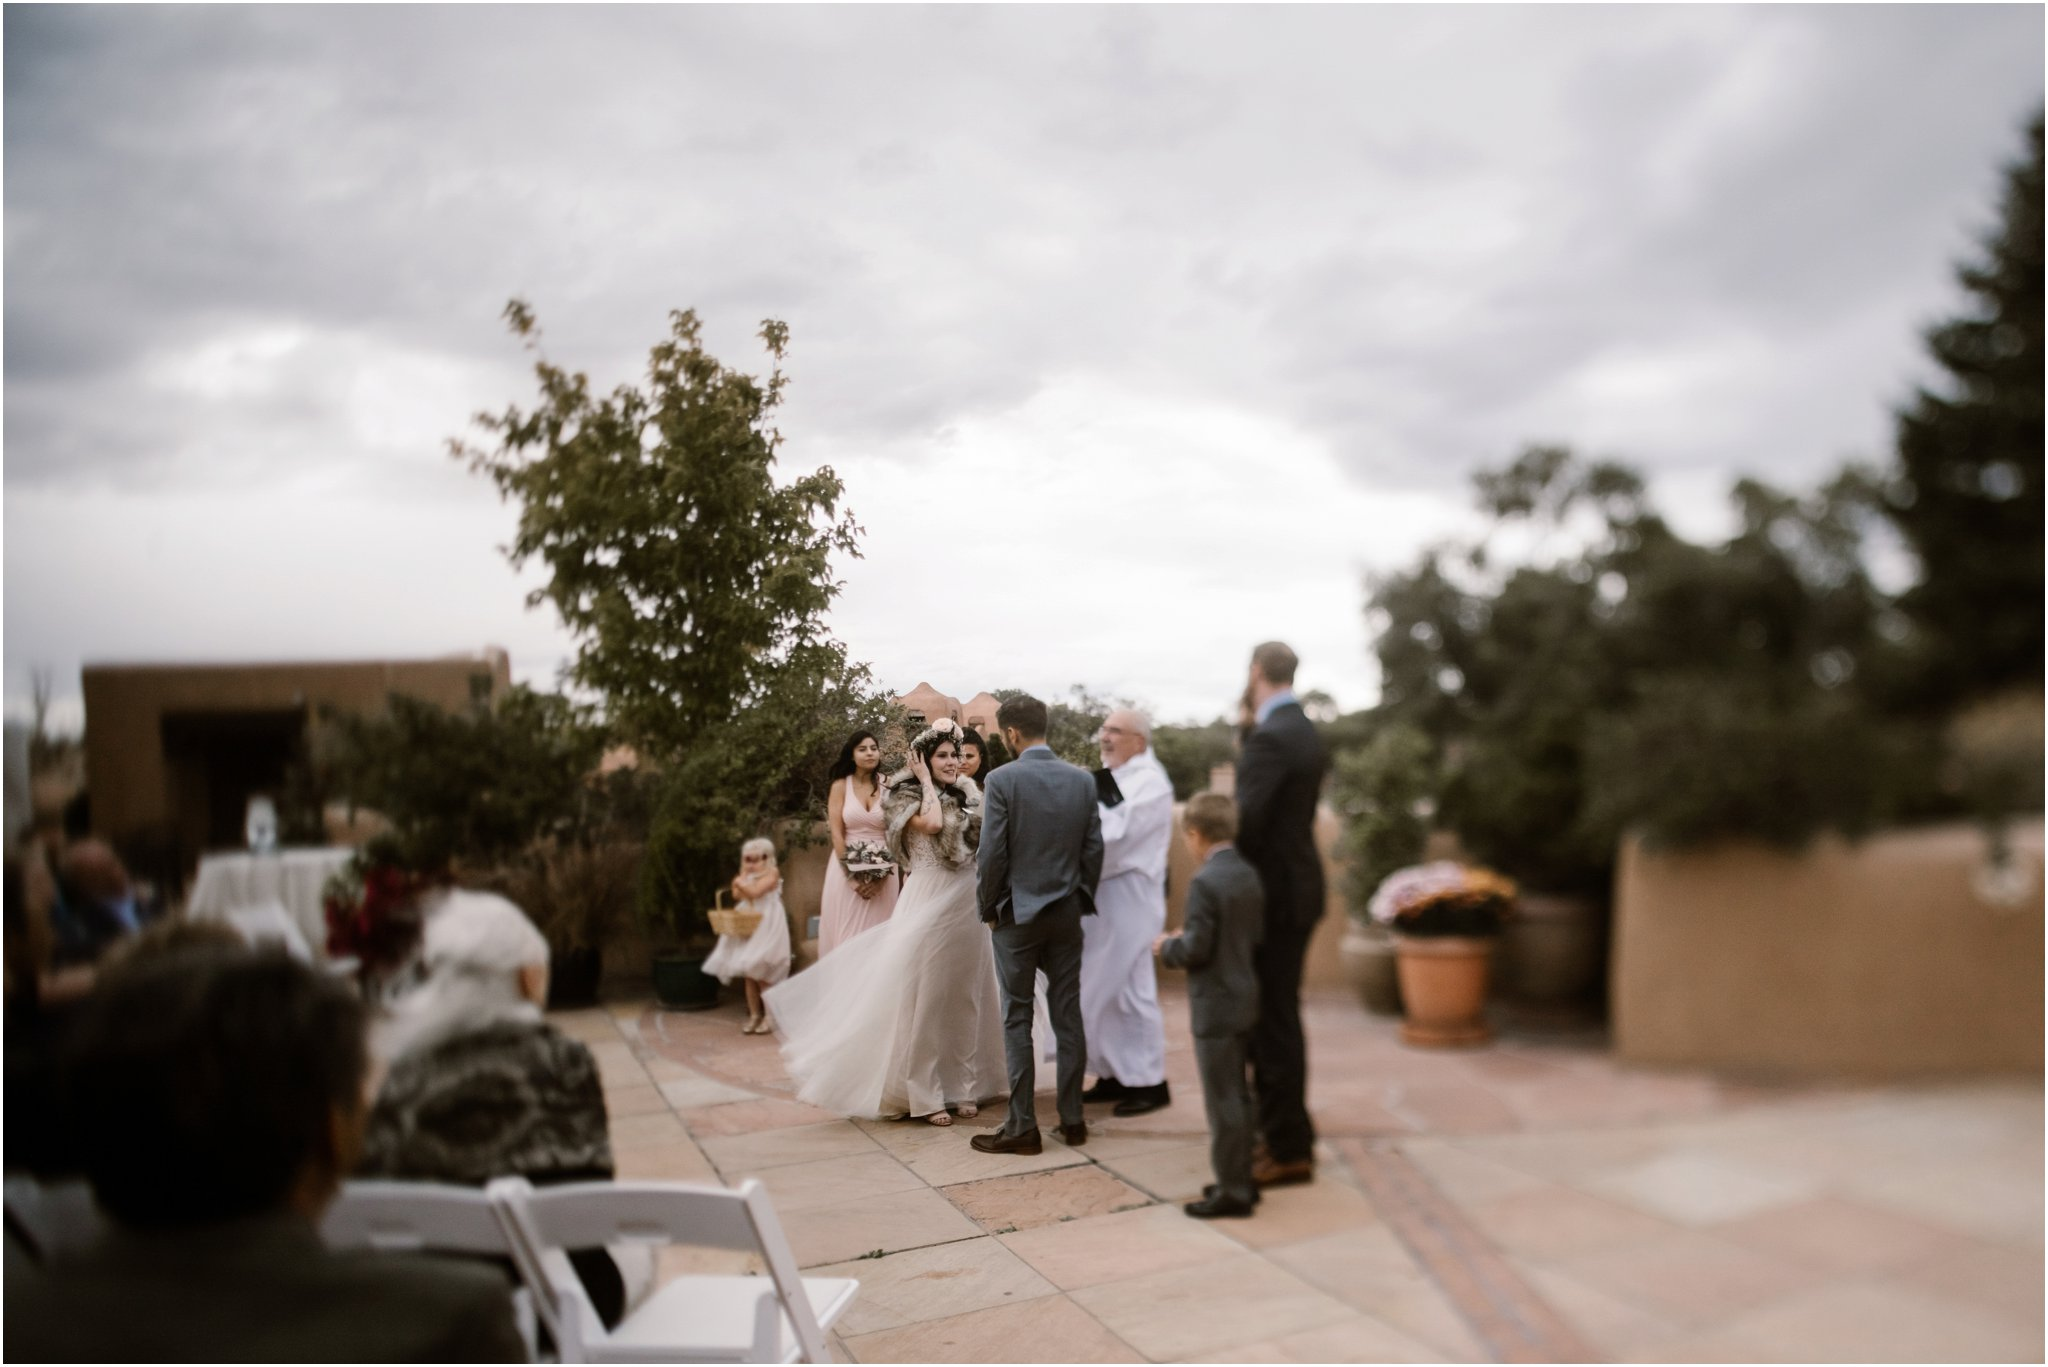 0028Santa Fe New Mexico Wedding Photographer, Blue Rose Wedding Photography